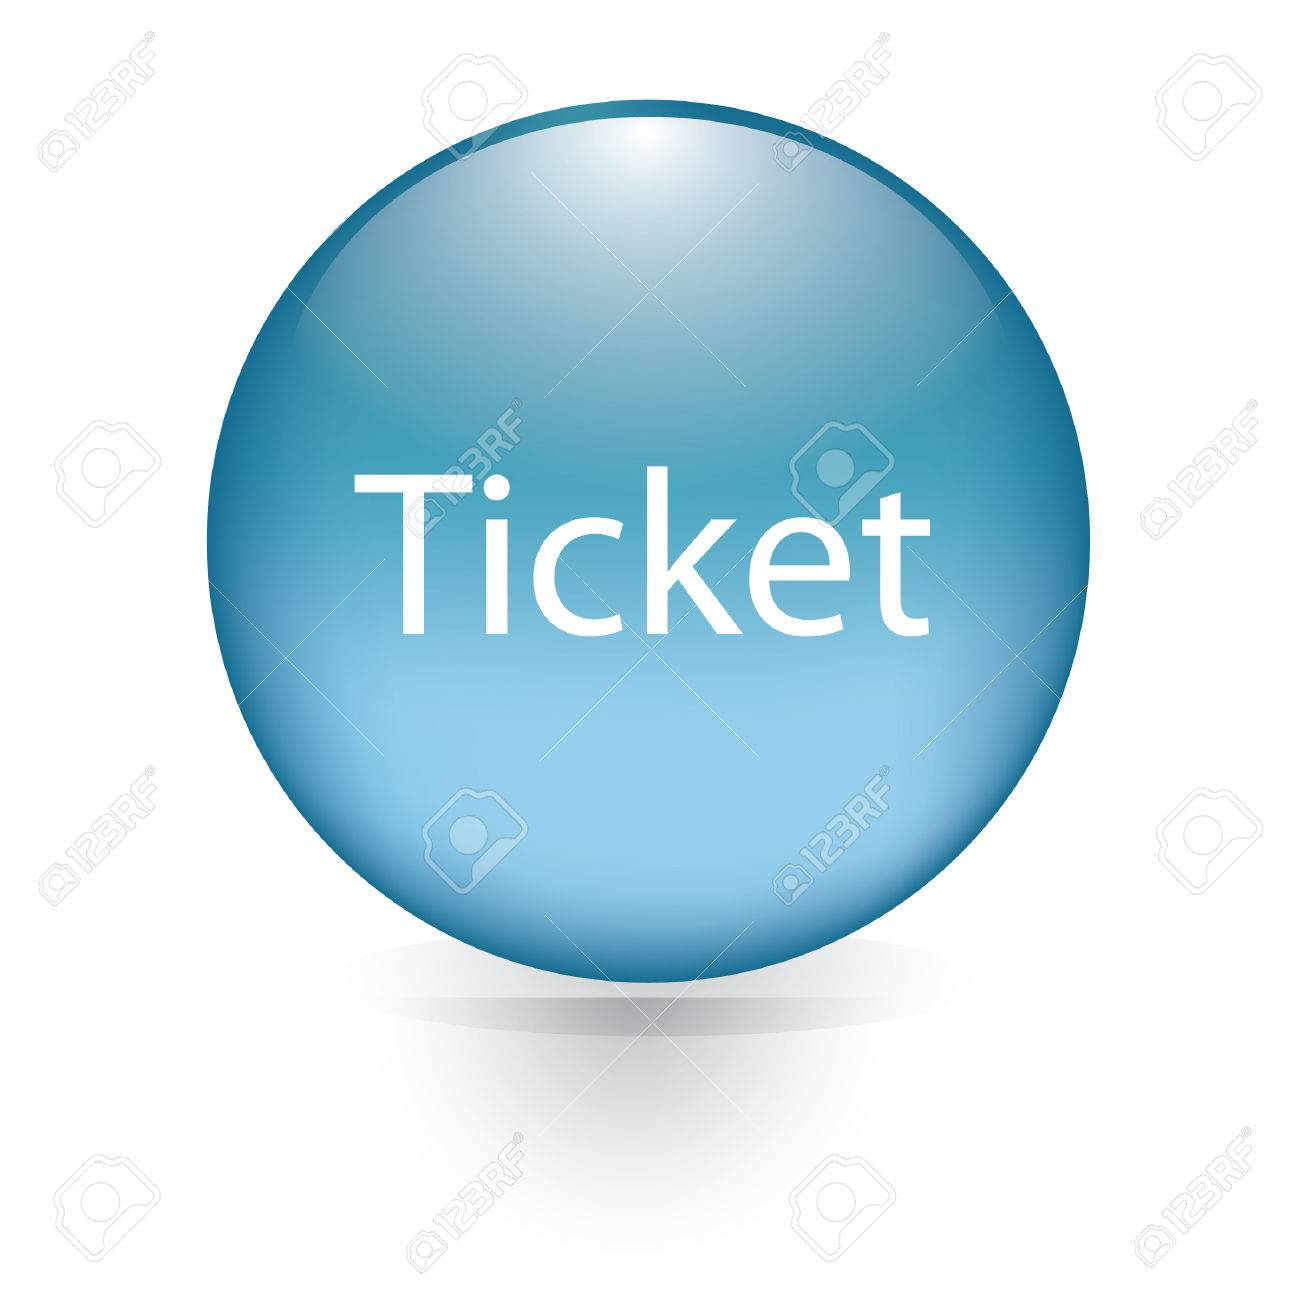 ticket word blue button royalty cliparts vectors and stock ticket word blue button stock vector 30349348